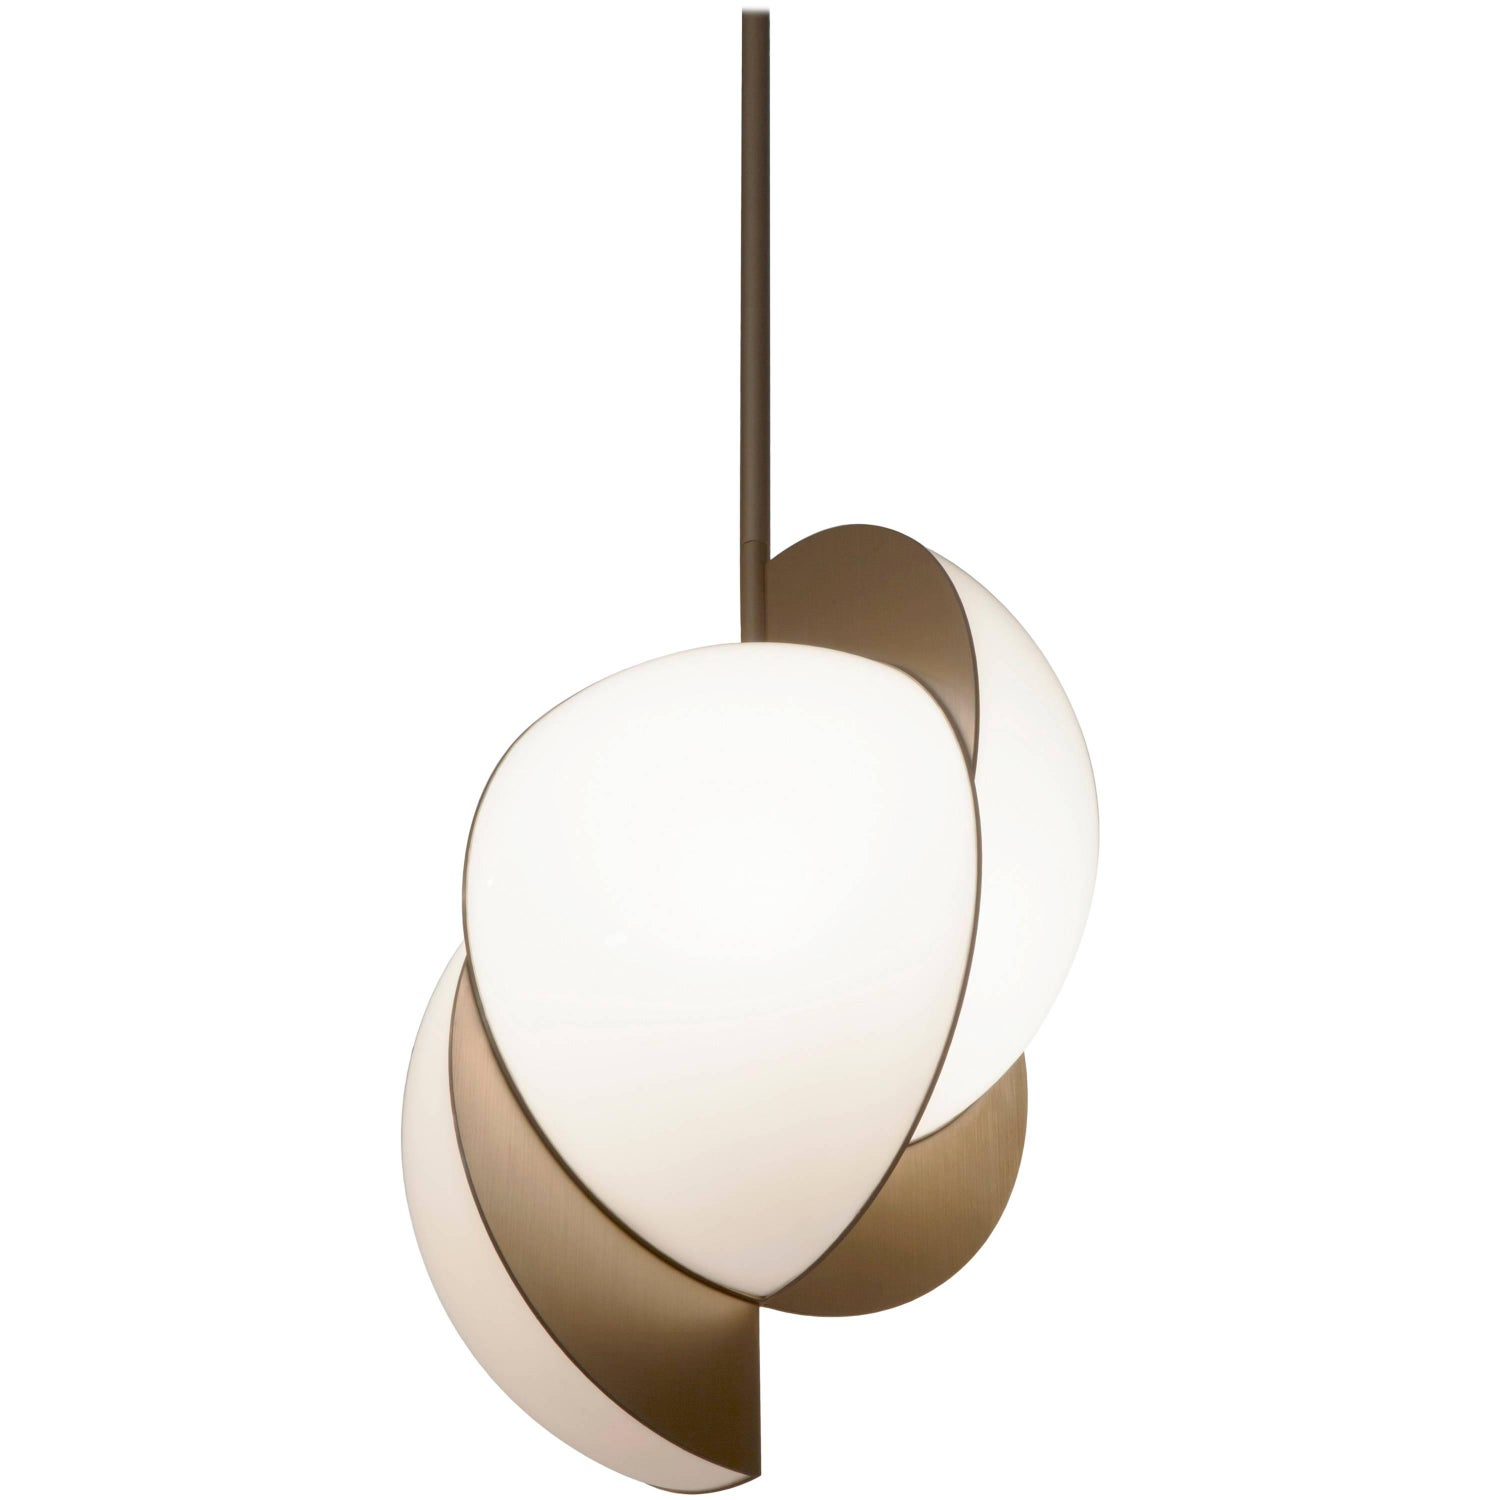 Collision lights pendant gold galvanic with white acrylic lamp by collision lights pendant gold galvanic with white acrylic lamp by lara bohinc for sale at 1stdibs arubaitofo Images